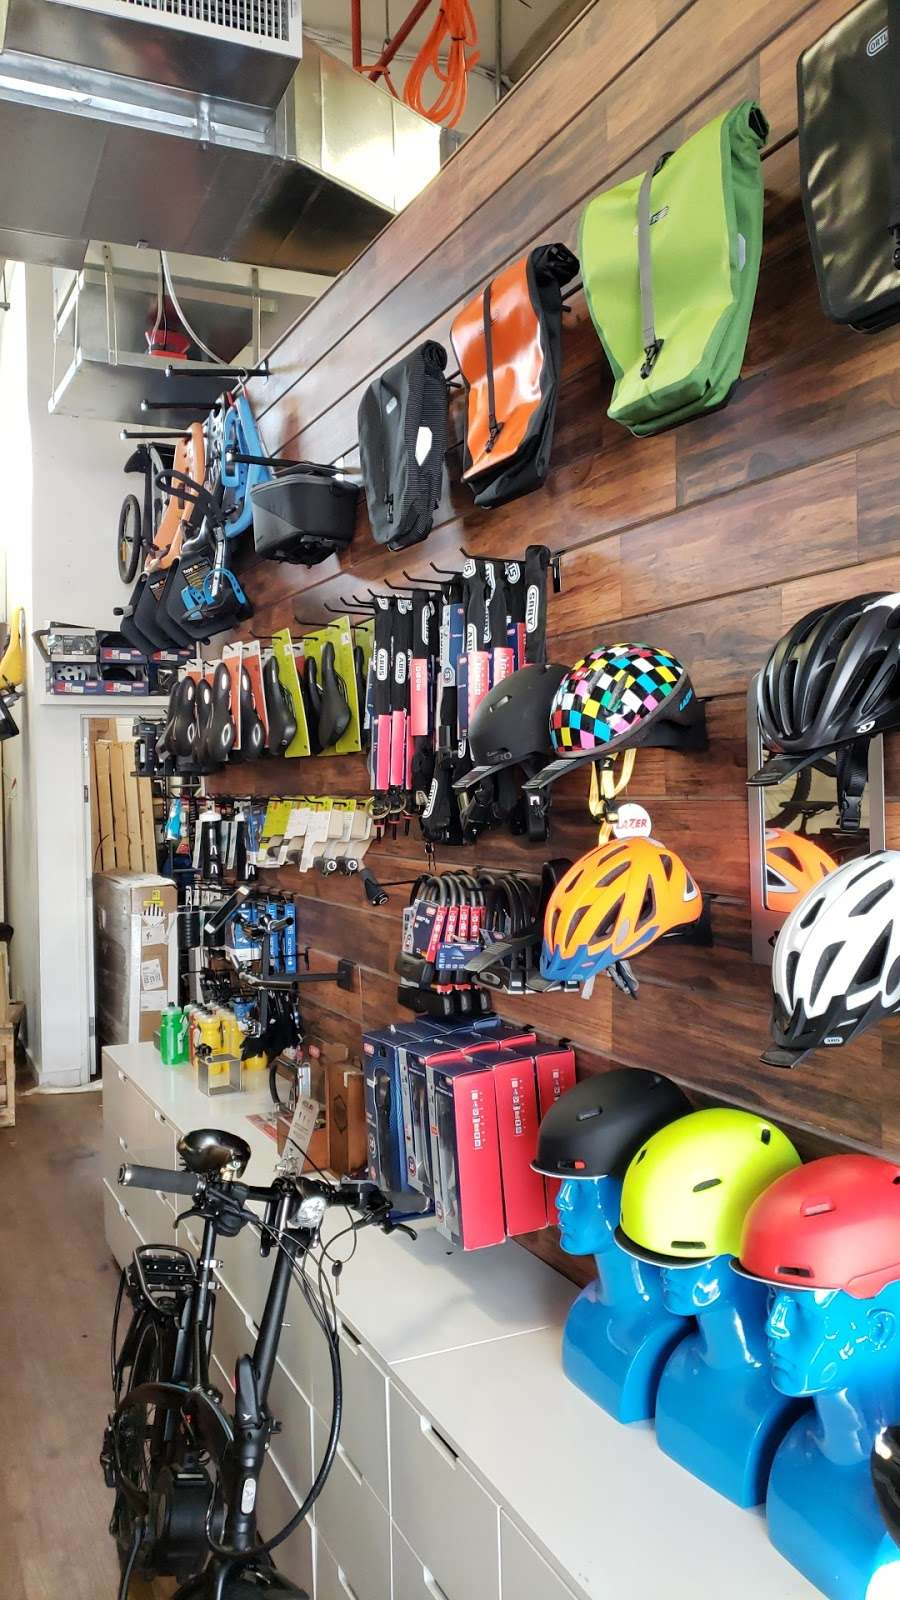 Propel Electric Bikes - bicycle store  | Photo 6 of 10 | Address: 134 Flushing Ave, Brooklyn, NY 11205, USA | Phone: (718) 643-4542